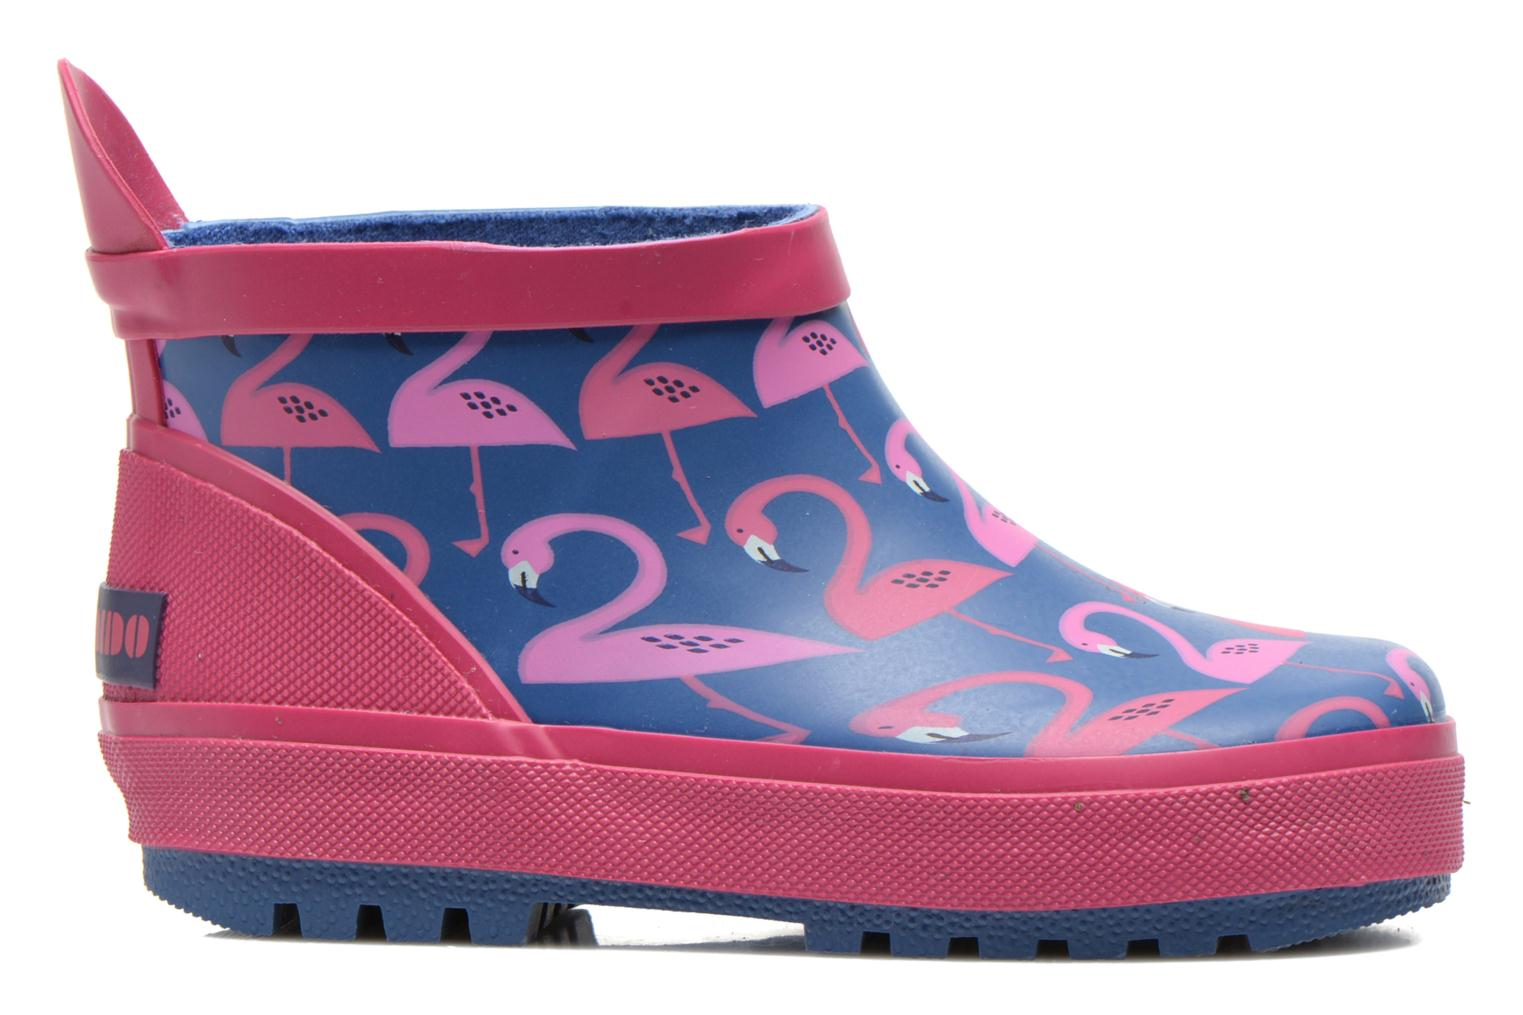 FLAMINGO BluePink